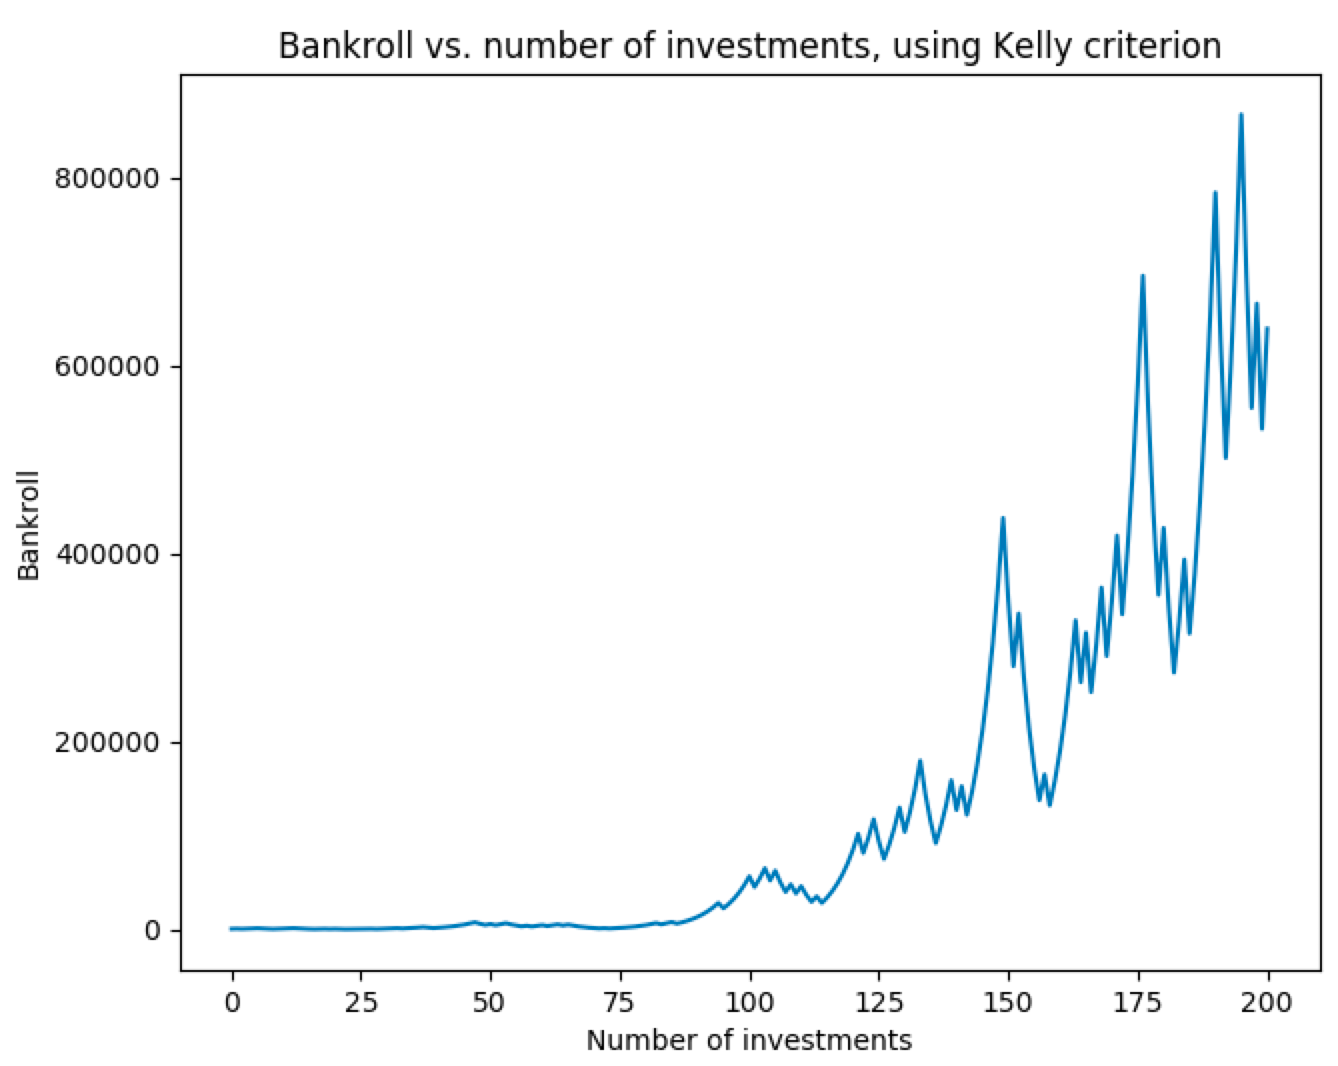 Figure 3a. Bankroll growth with Kelly criterion, Example 1.